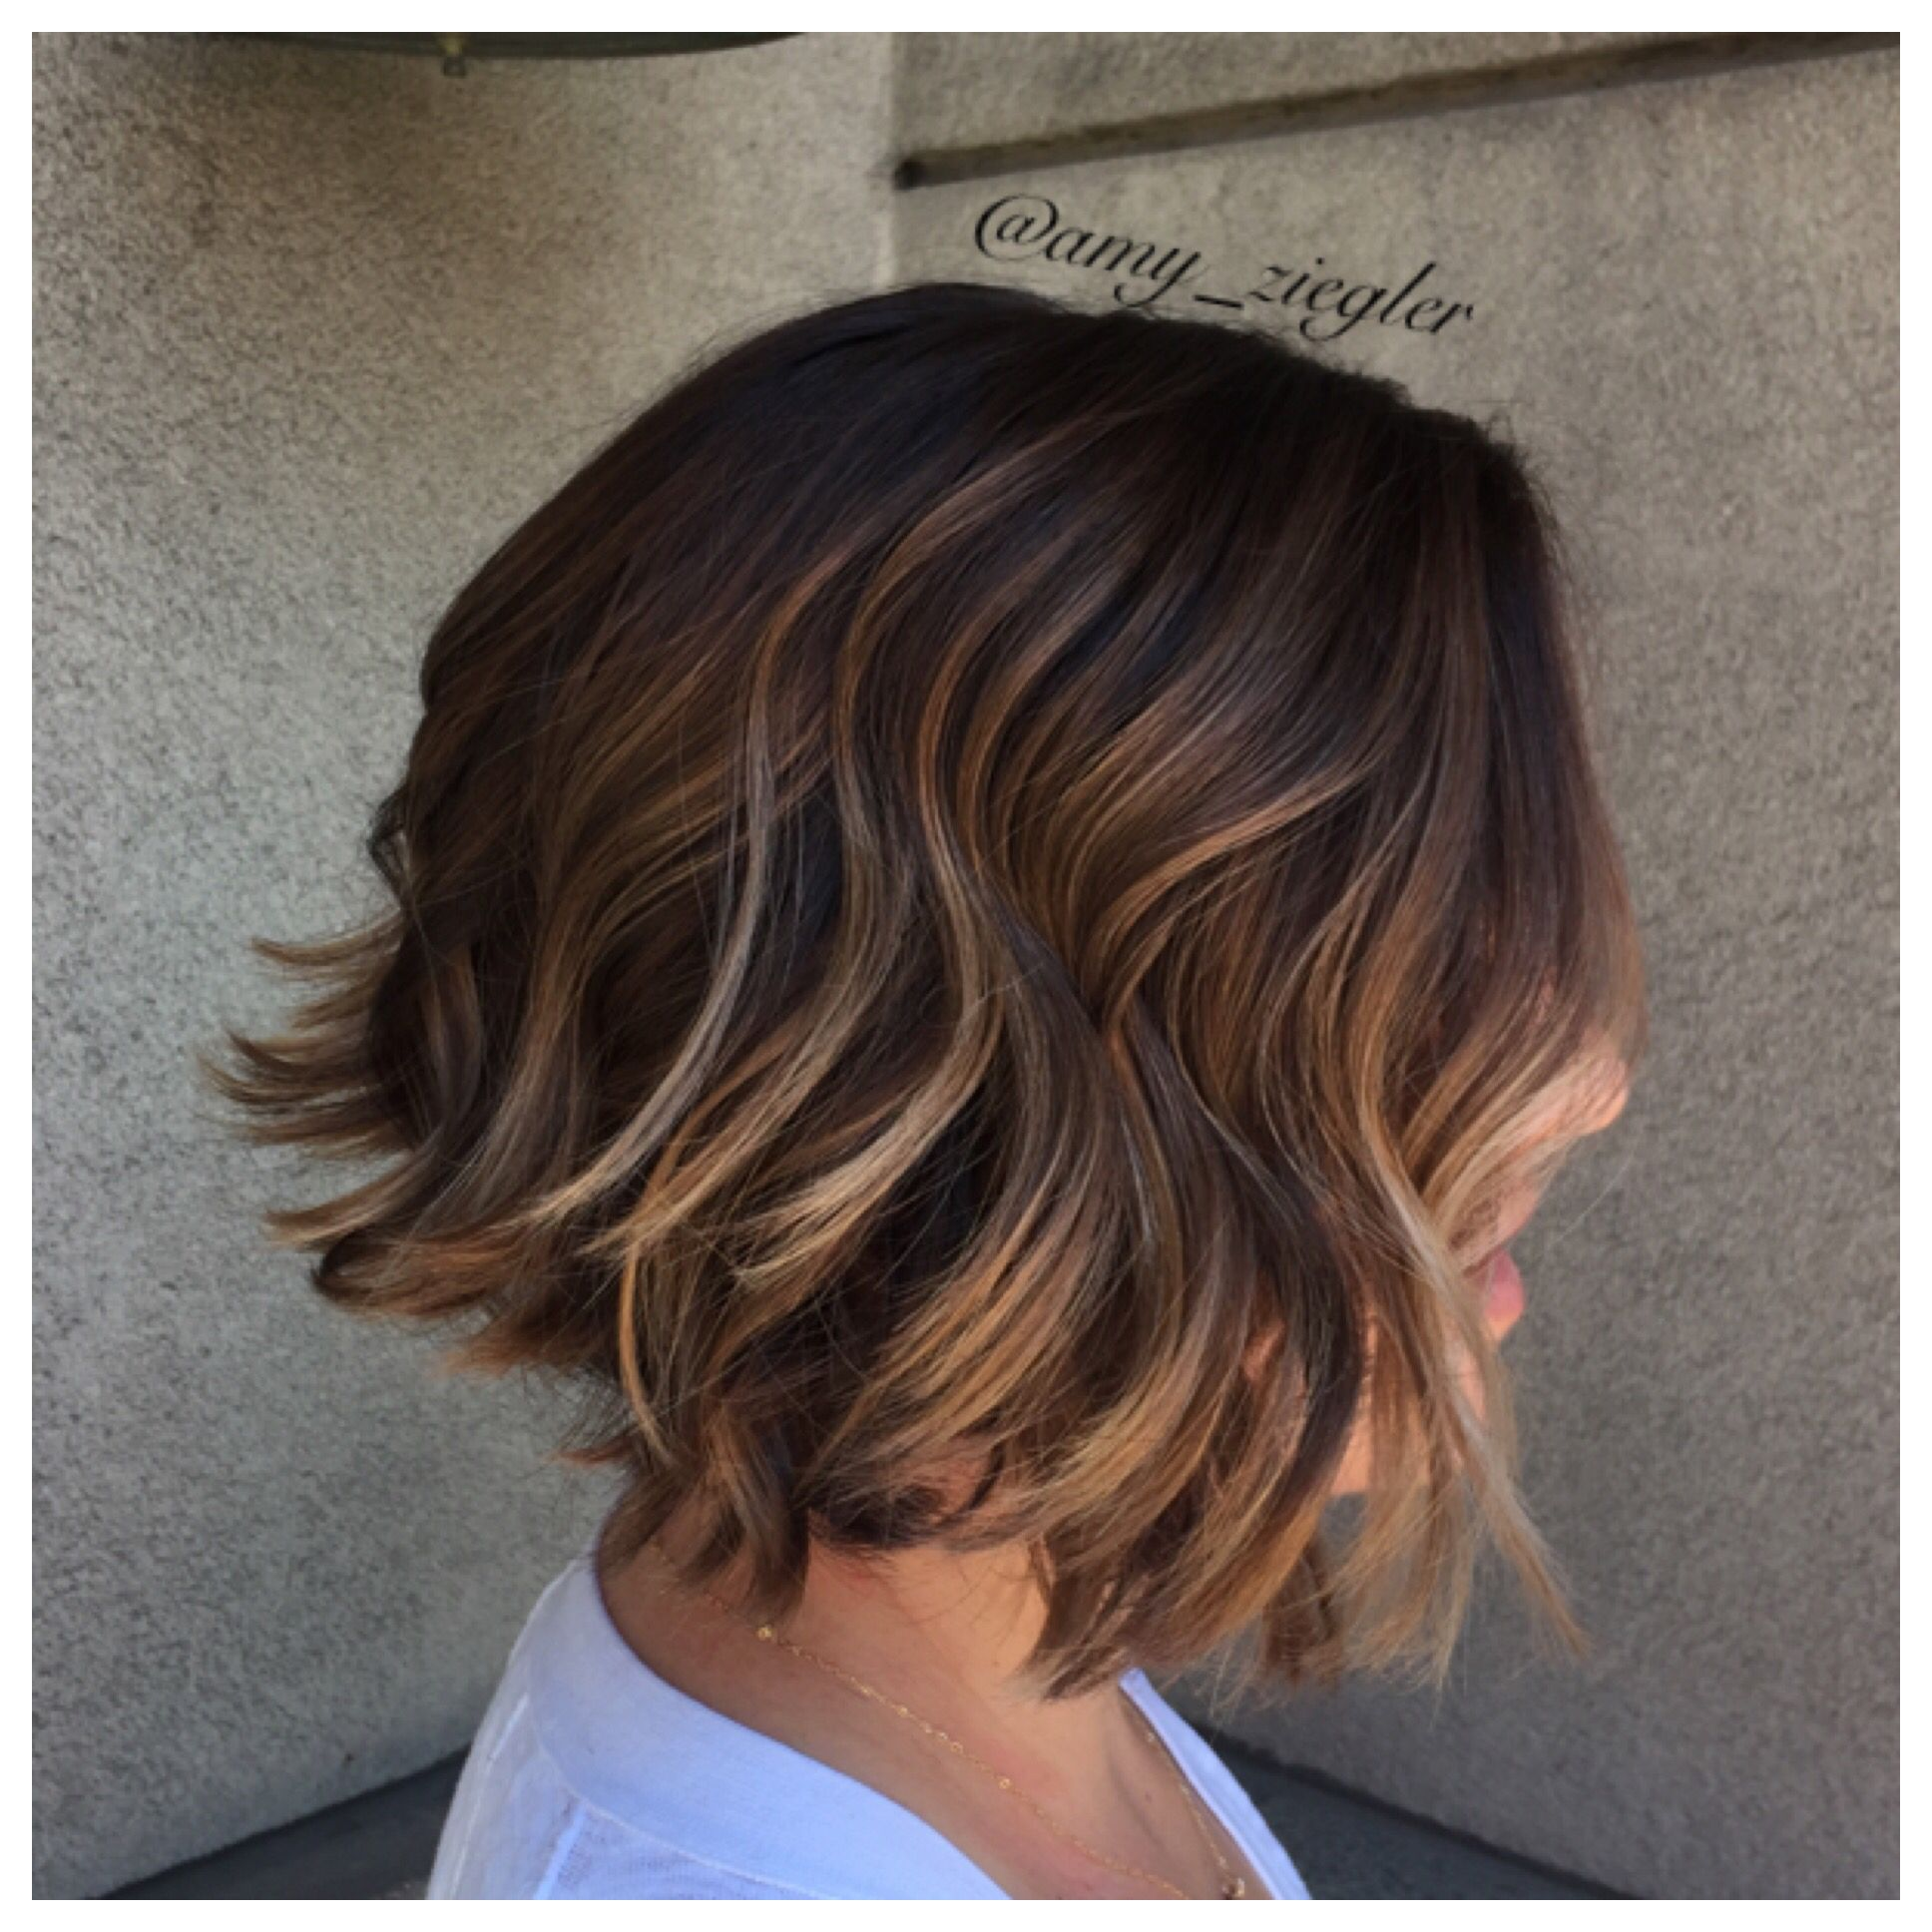 Short textured haircut and blonde balayage on brunette hair by @amy_ziegler